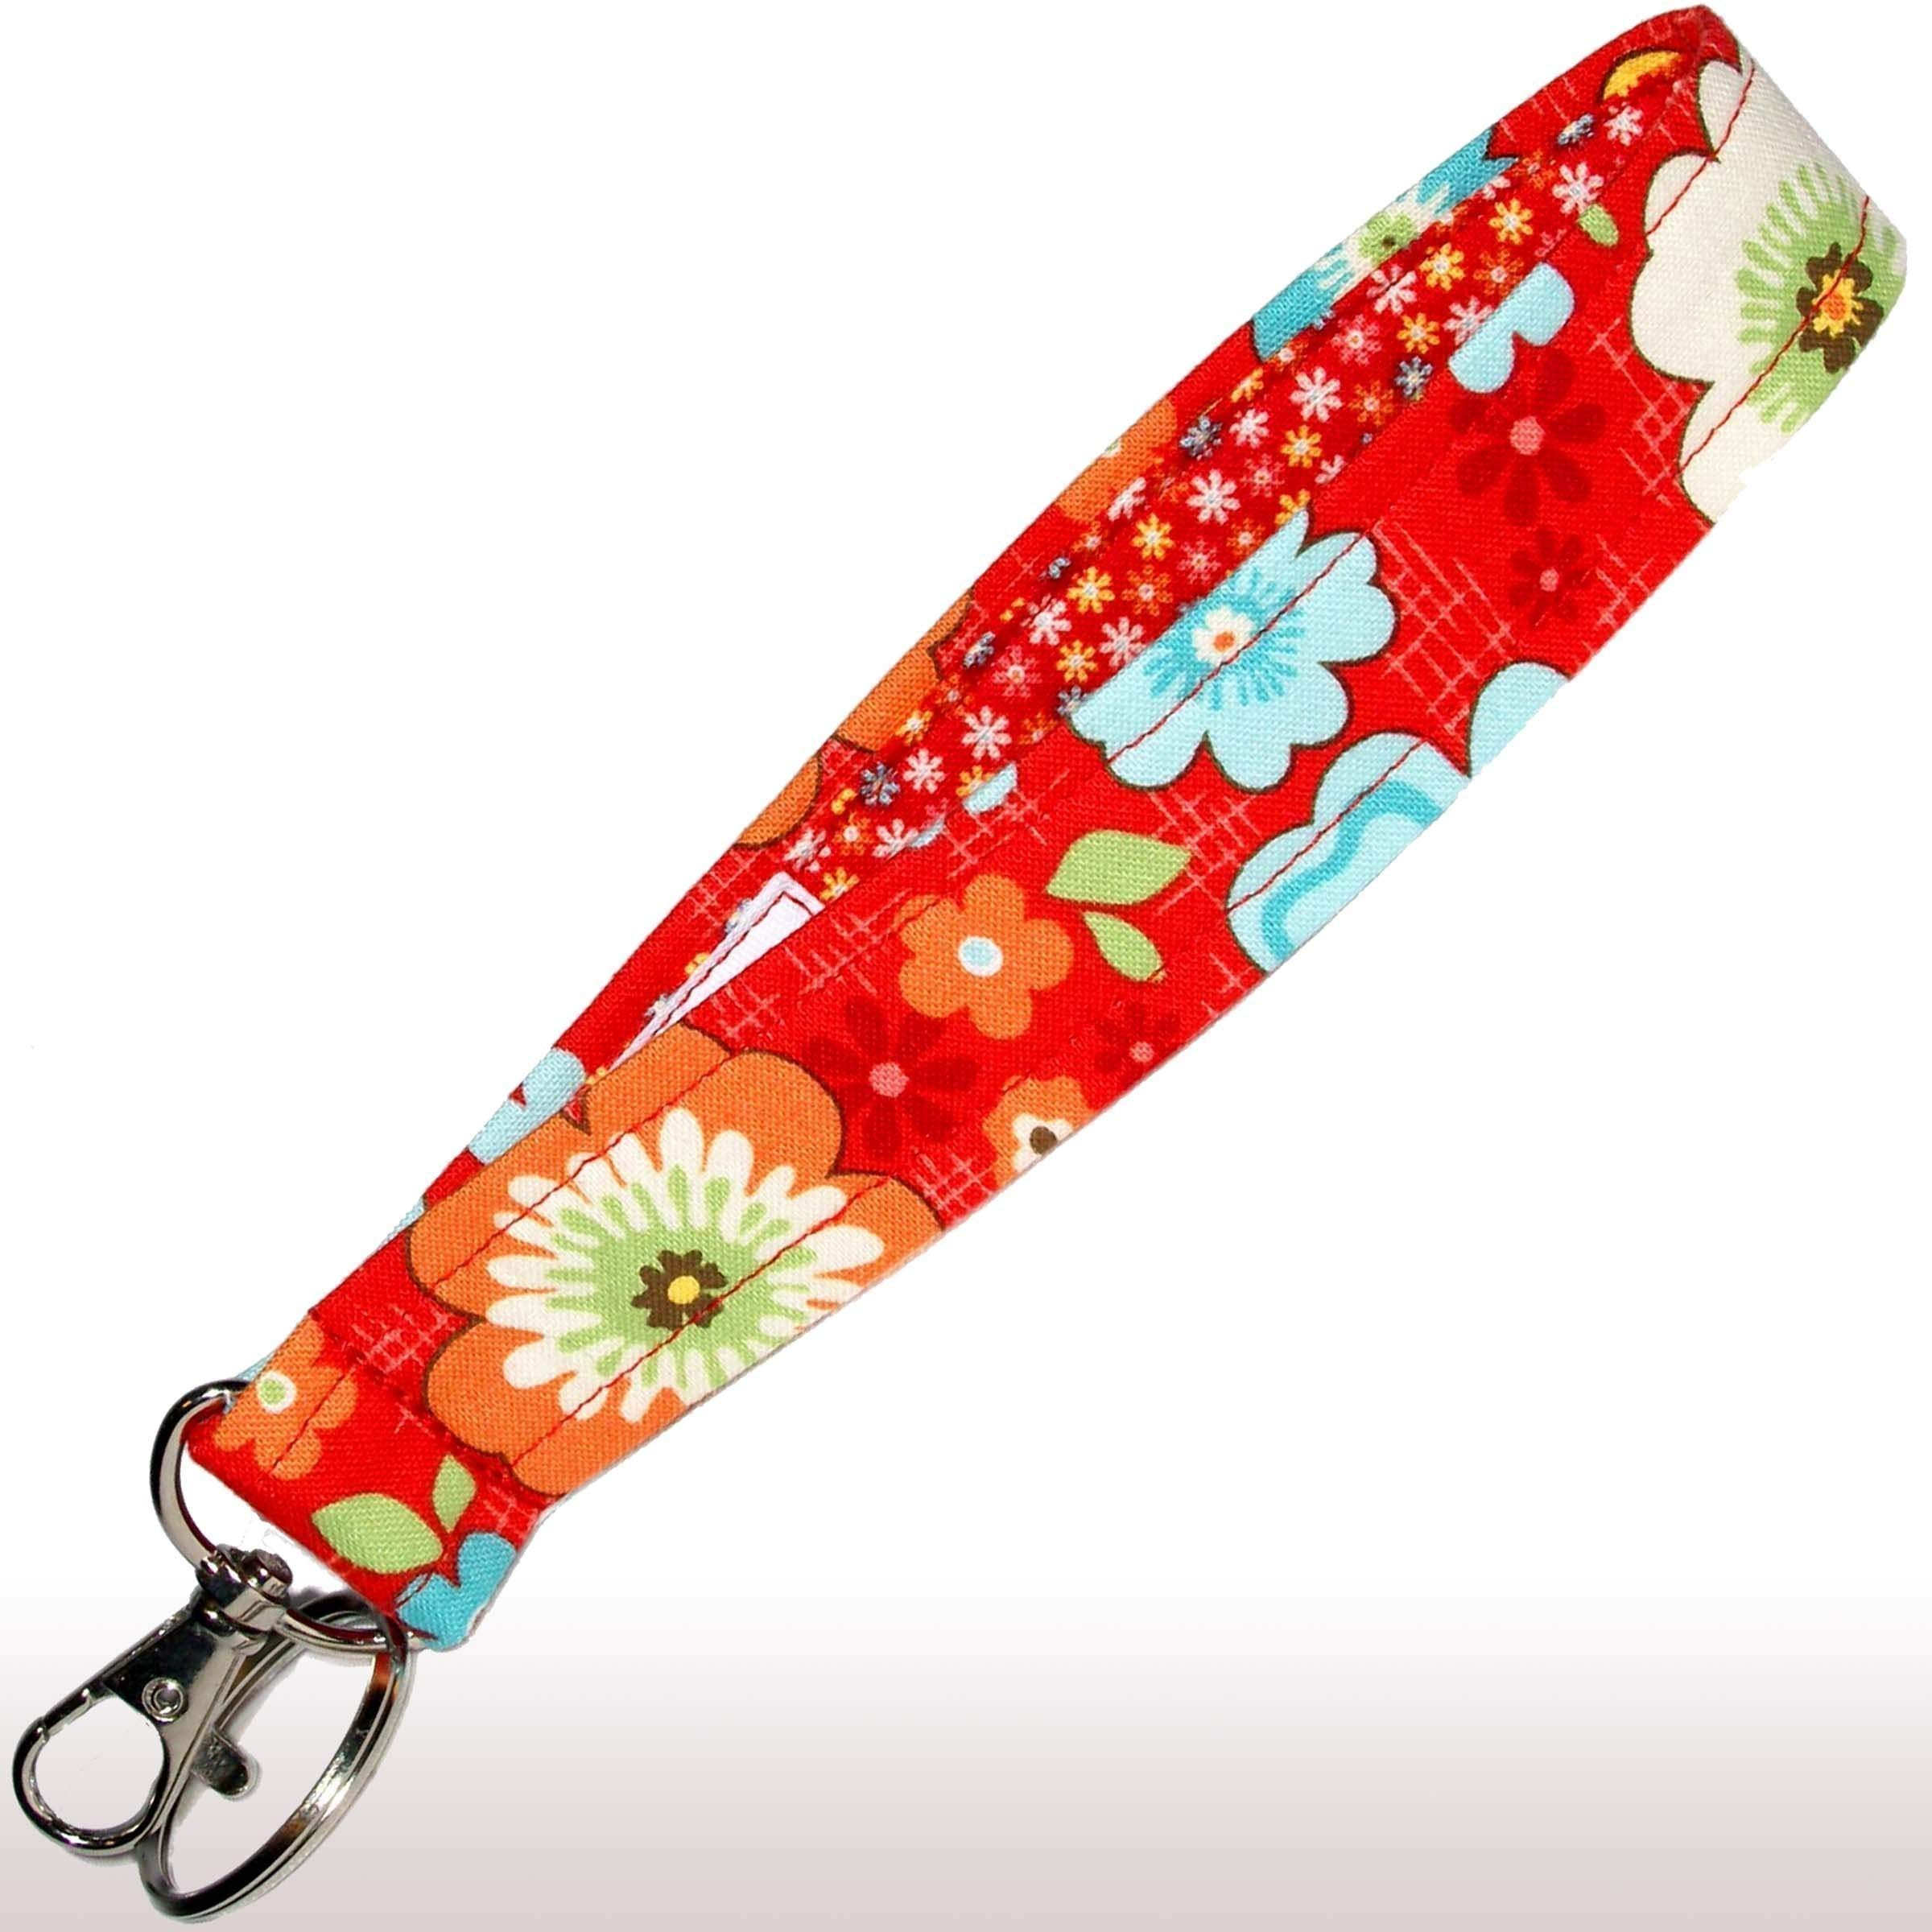 Red Floral Key Fob - 6'' Loop - Flower Keychain - Keychain Strap - Purse or Wallet Strap by Green Acorn Kitchen